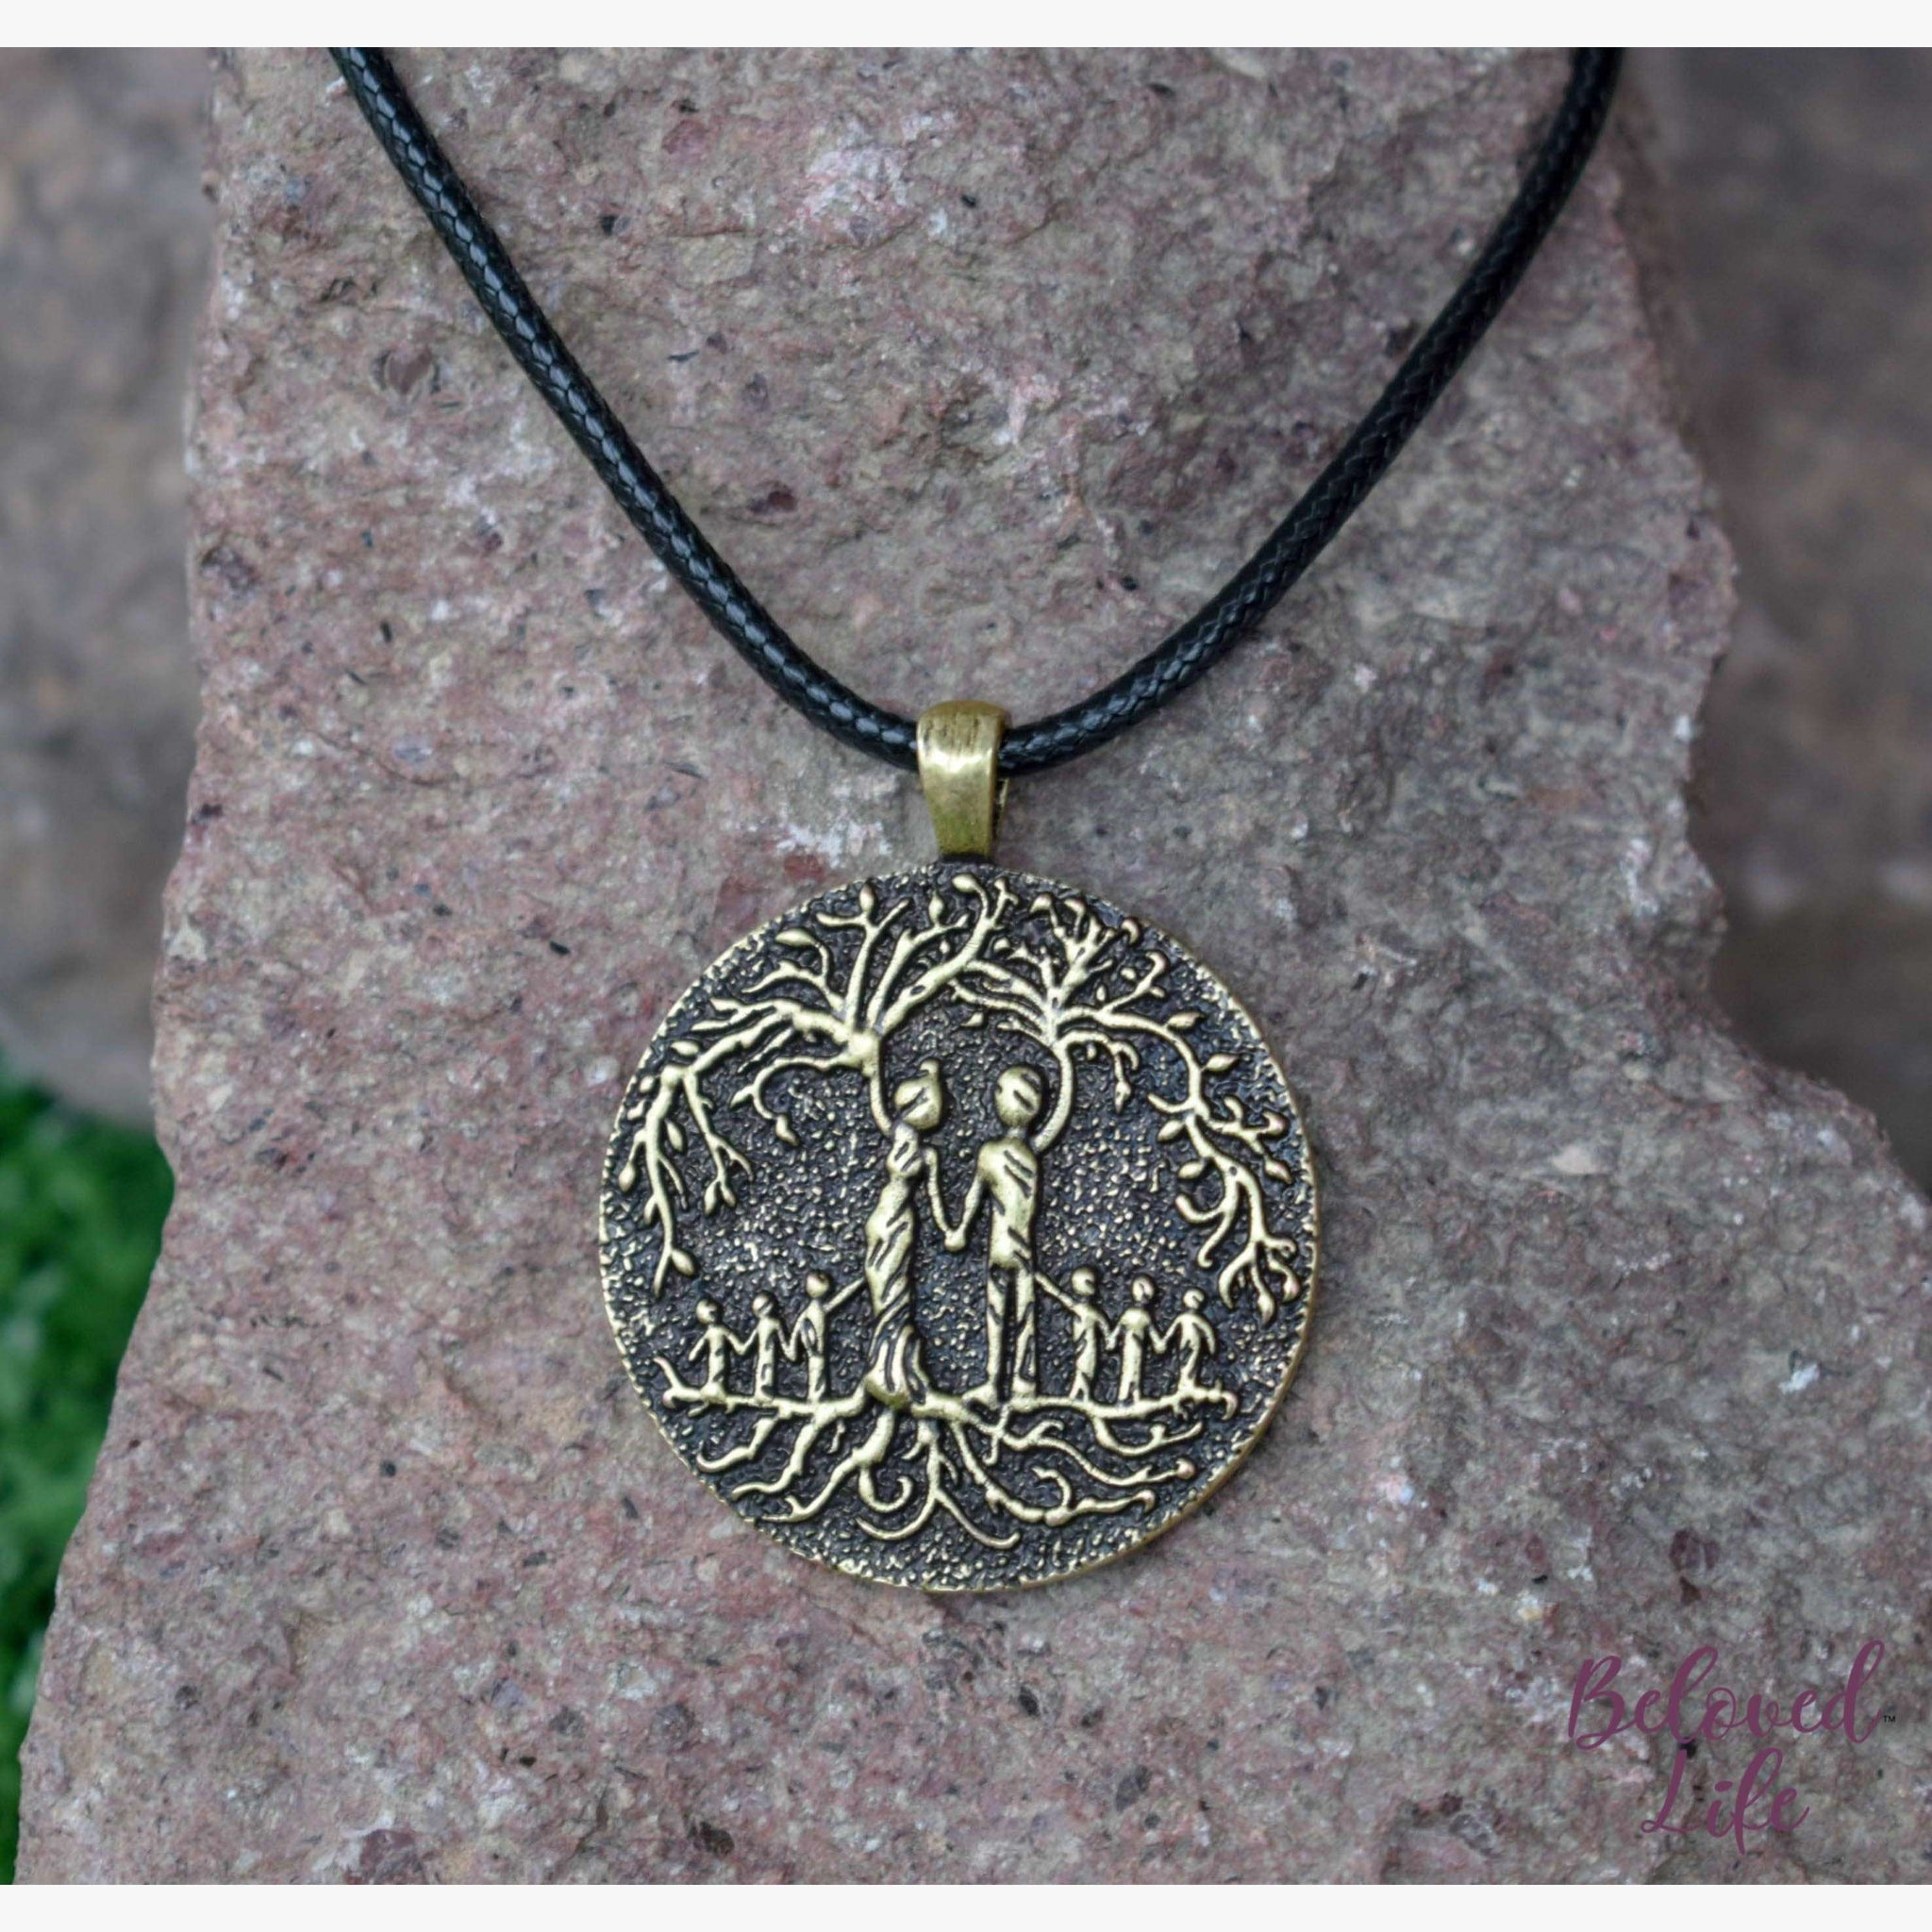 Beloved Life Jewelry: Parents & 6 Child 'Tree of Life' Pendant Necklace [Bronze]